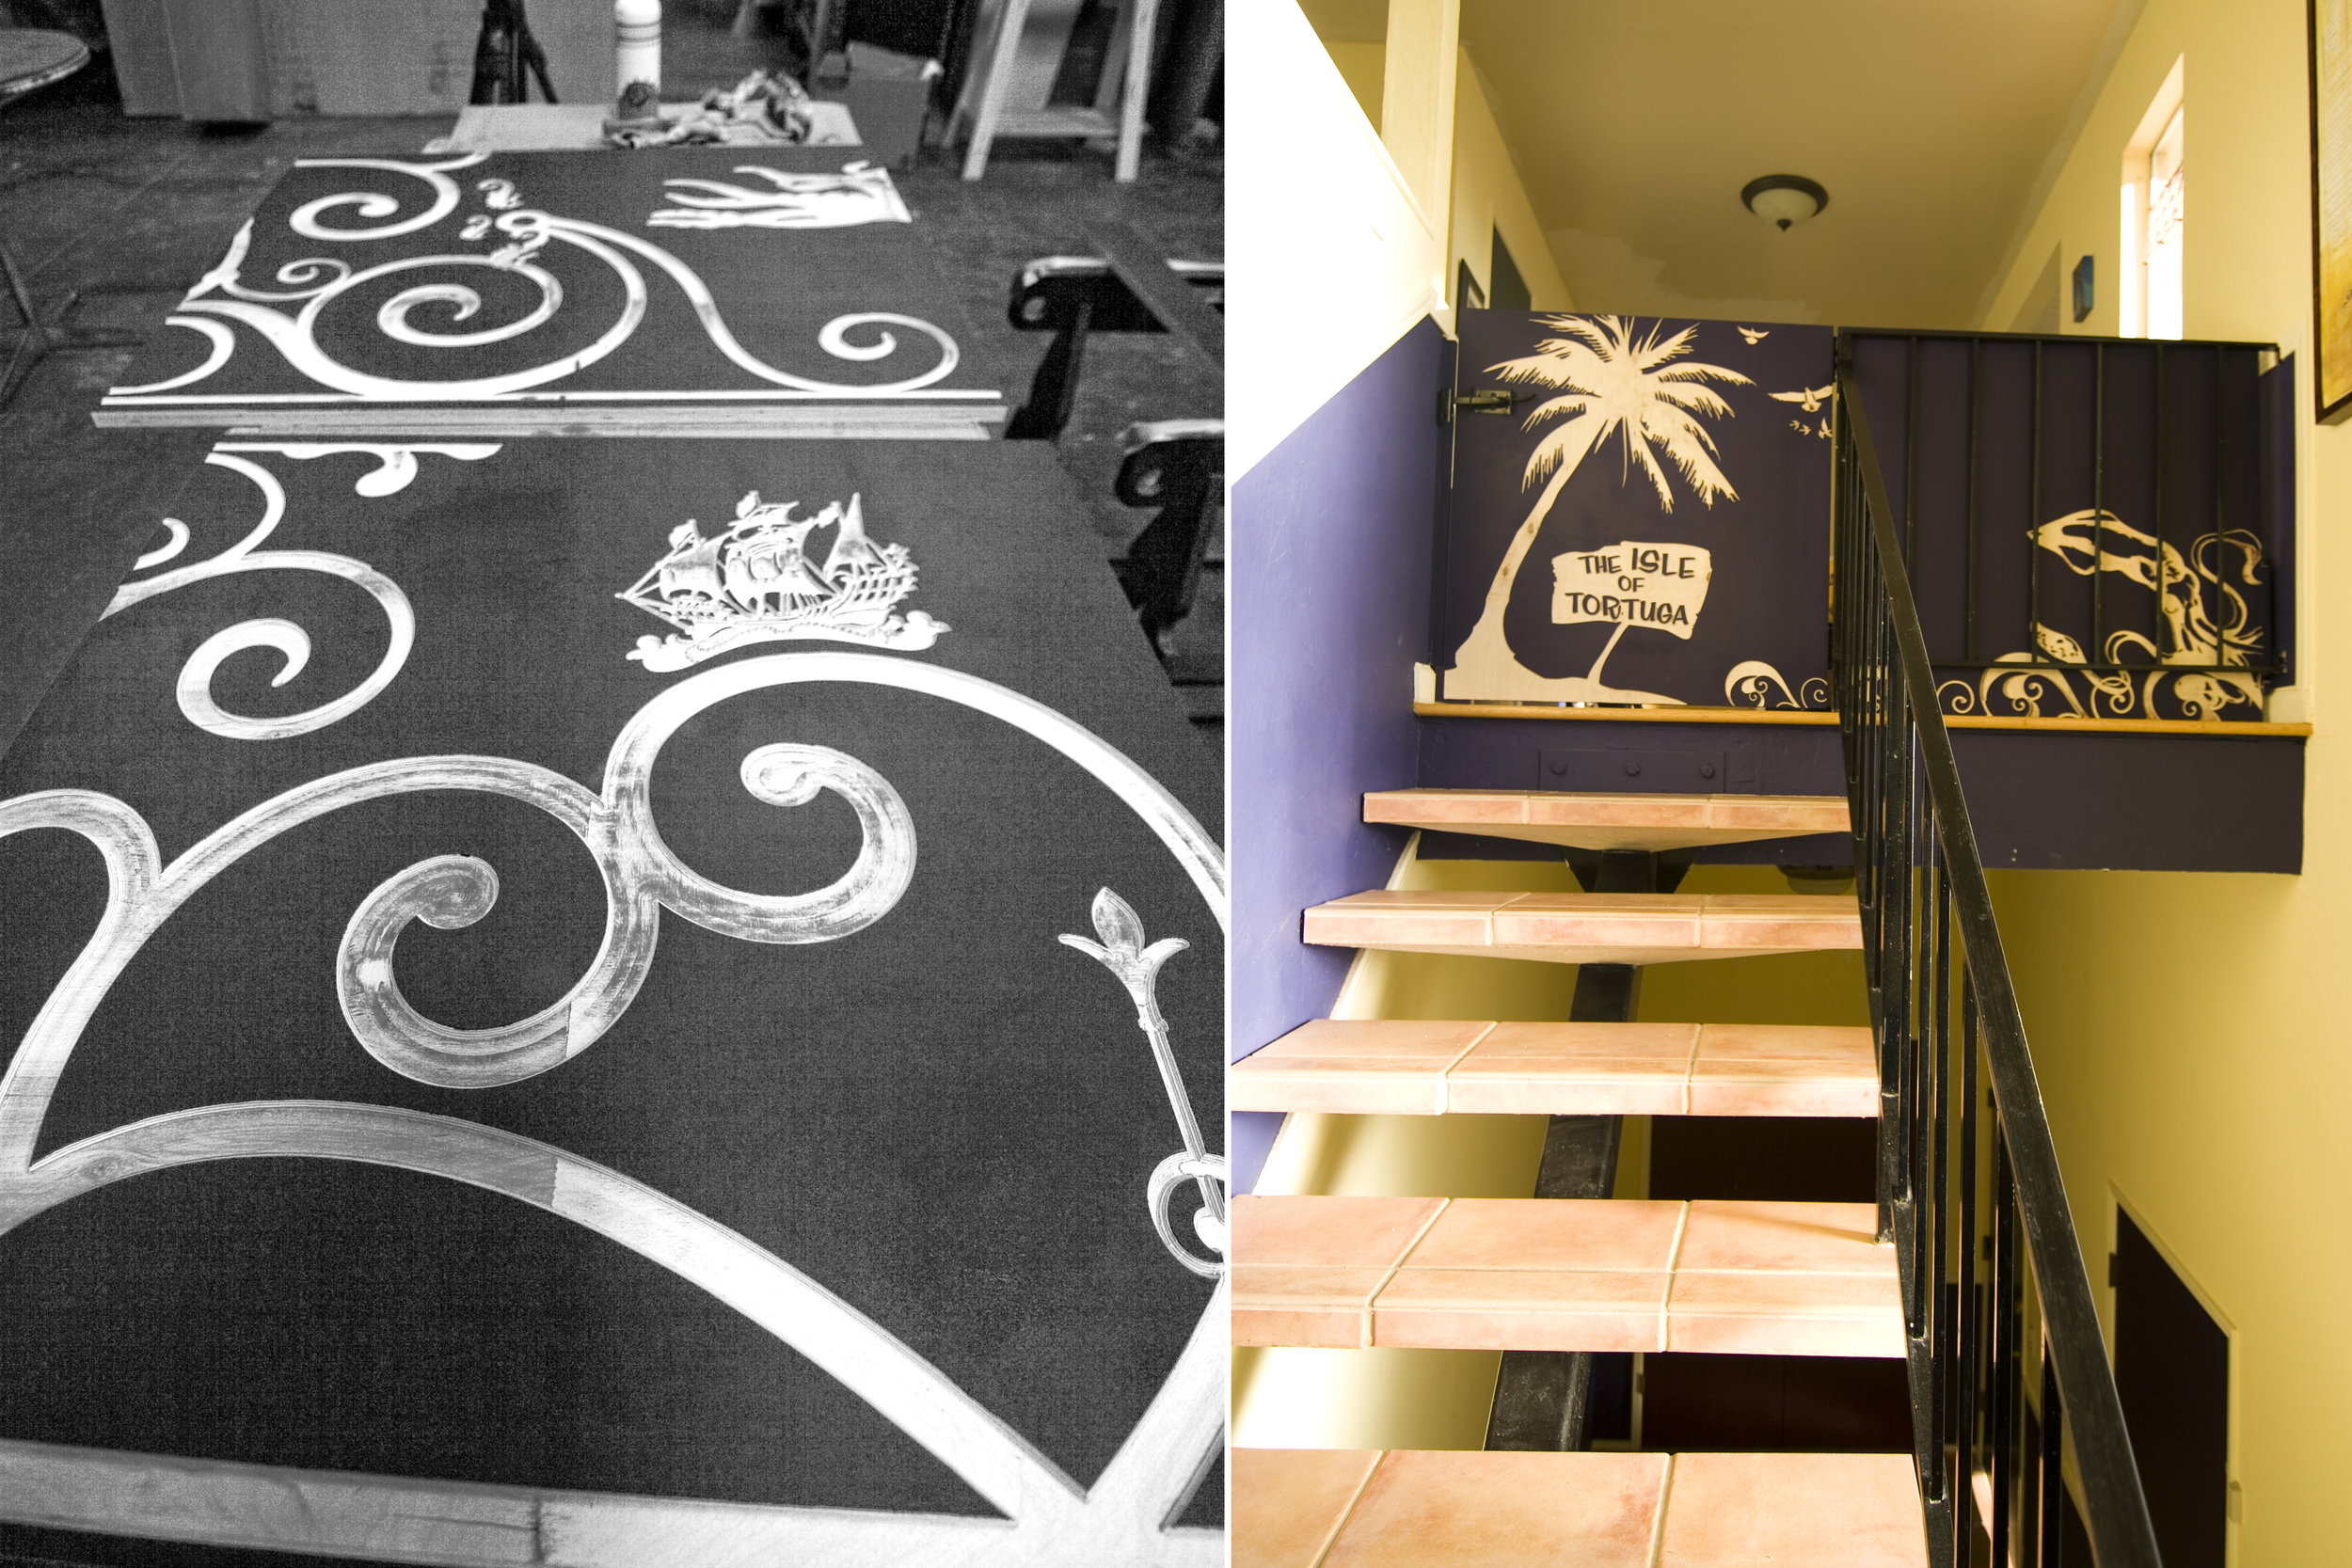 Looking up the stairs, the decorative carvings are referencing the clients passions and the new gate is protecting small children from those open stairs.